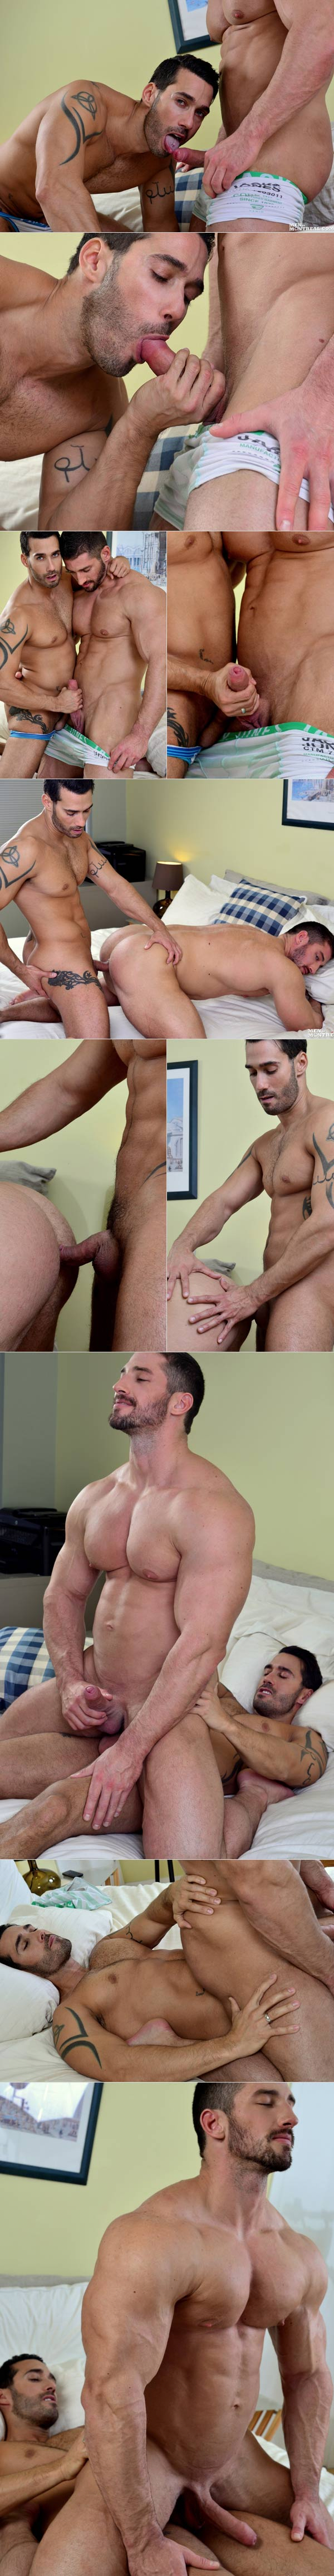 Initiating Christian - Round 2! (Christian Power & Alexy Tyler) at MenOfMontreal